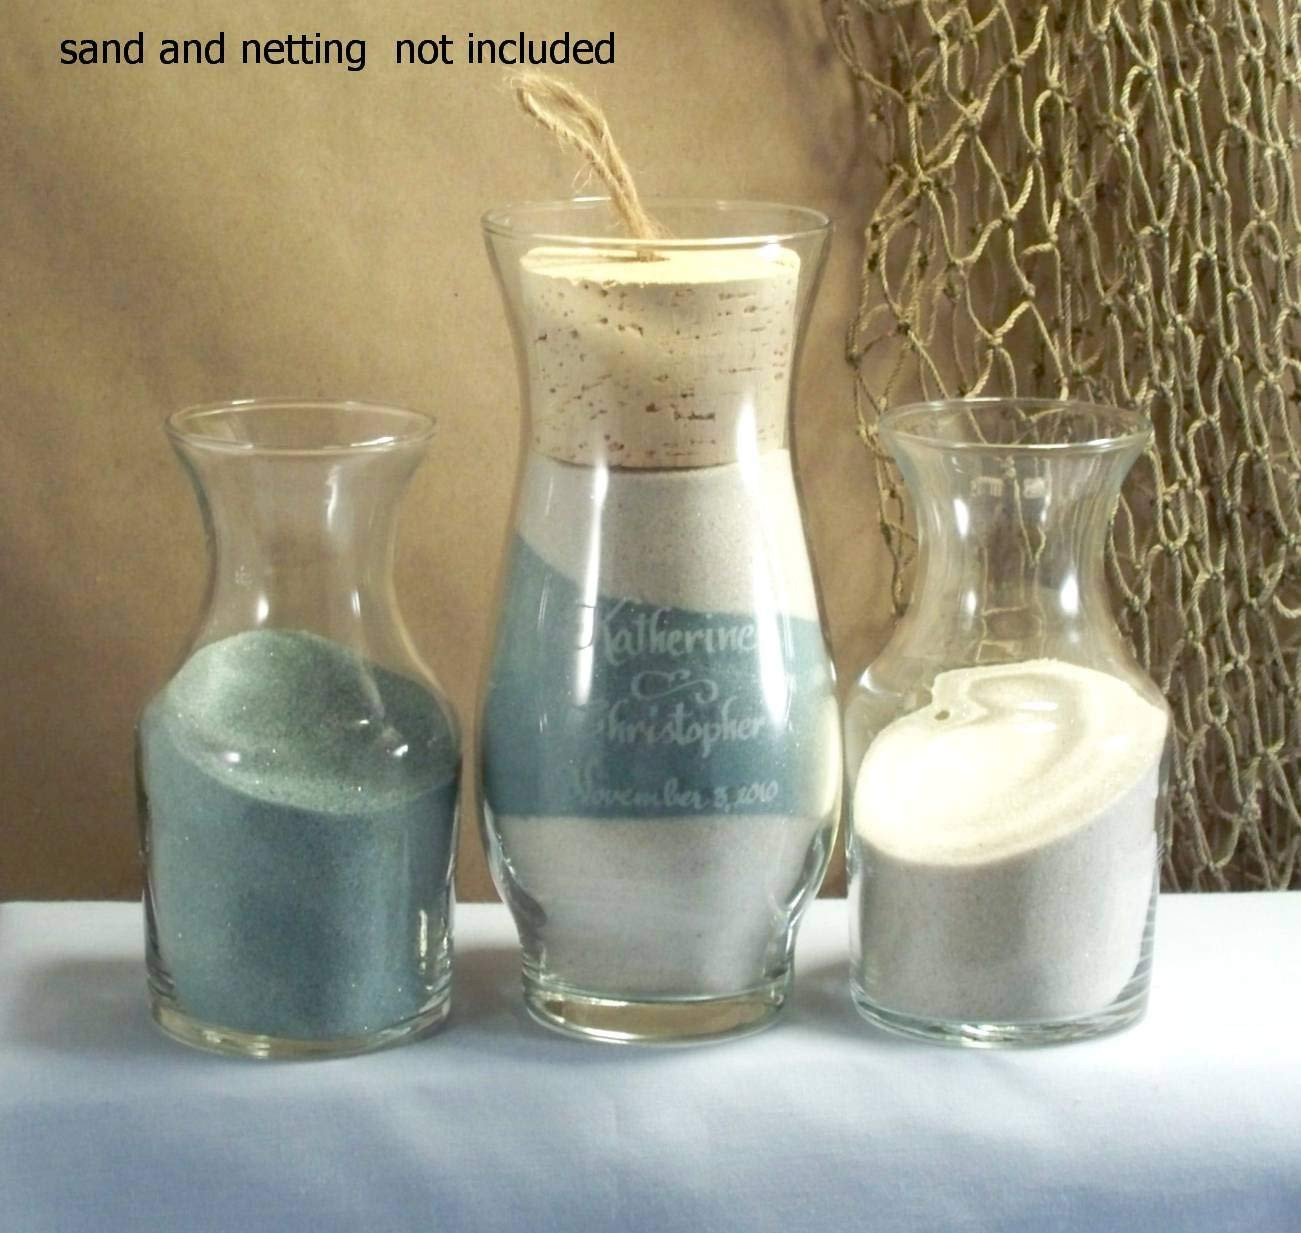 sand ceremony vase set of amazon com personalized unity sand ceremony style sonora home inside amazon com personalized unity sand ceremony style sonora home kitchen